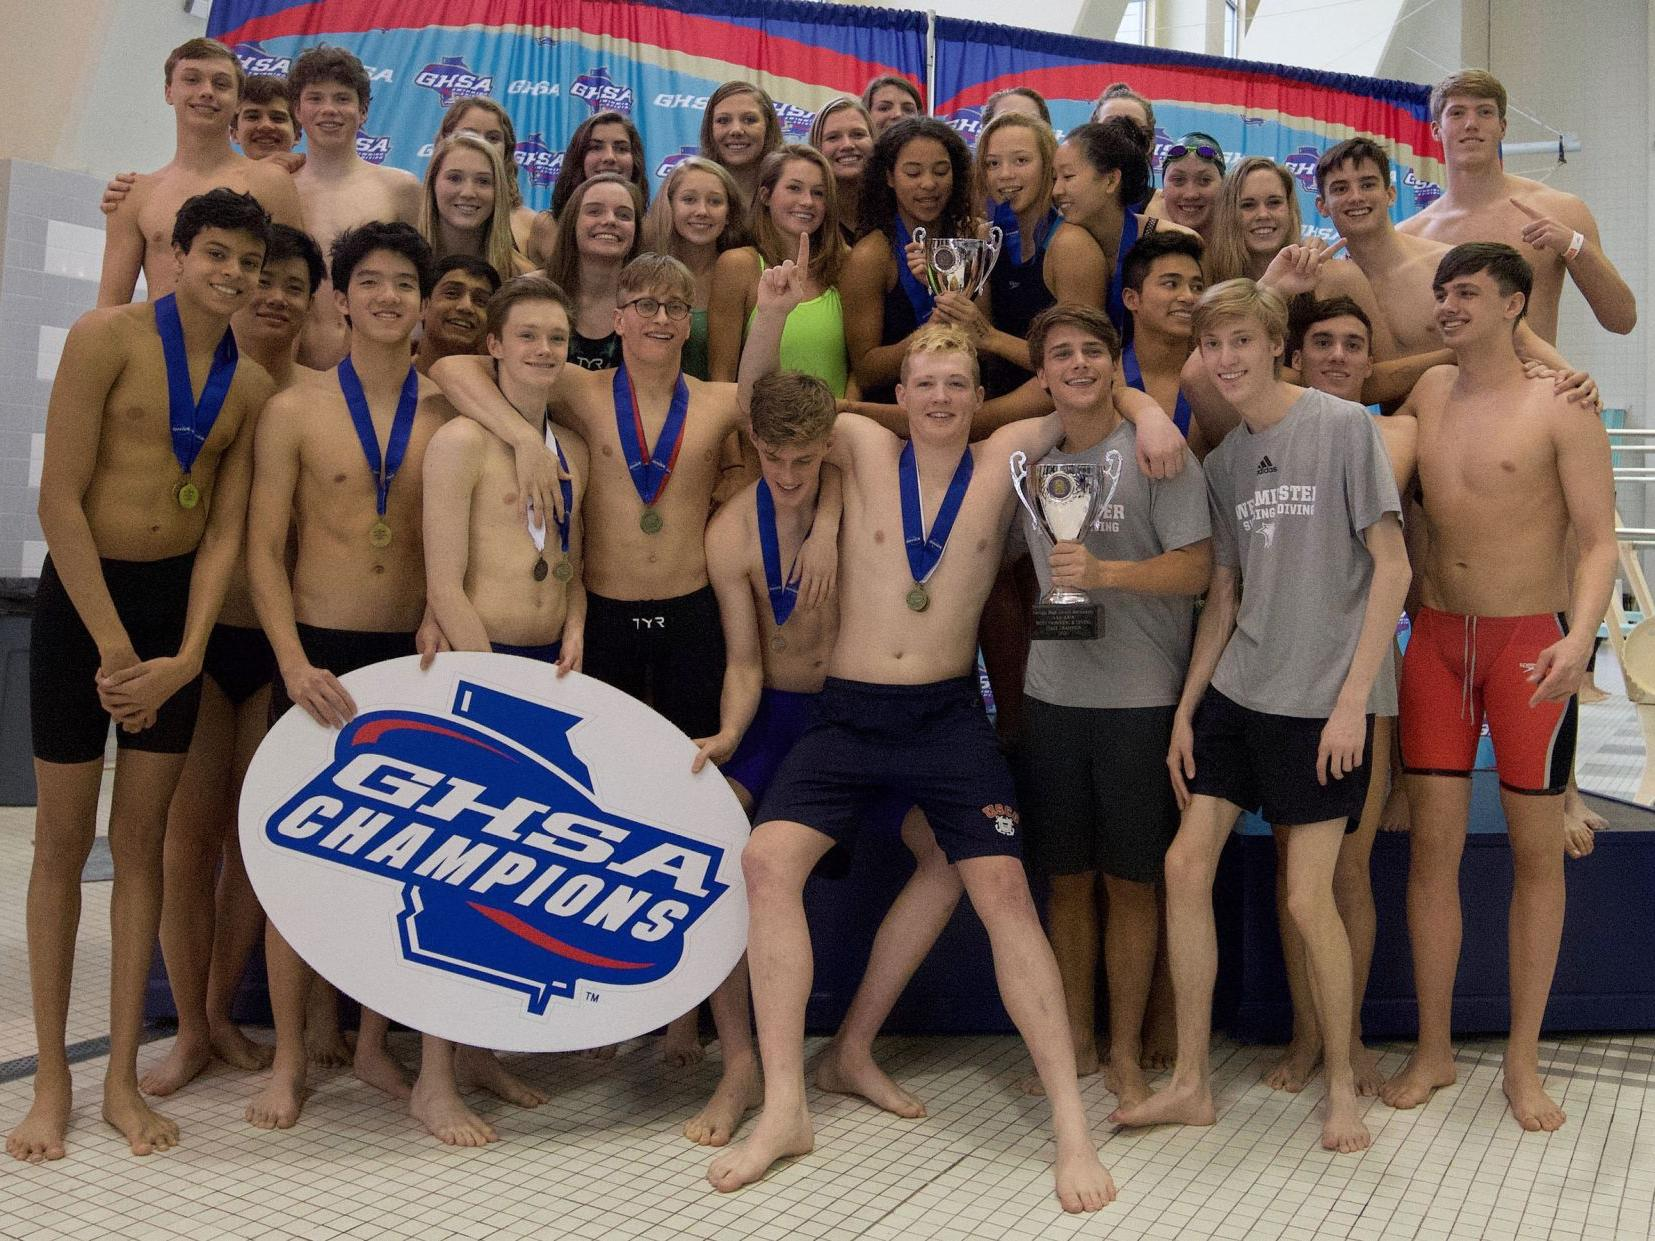 Westminster And Marist Swimming And Diving Teams Bring Home State Titles Sports Mdjonline Com